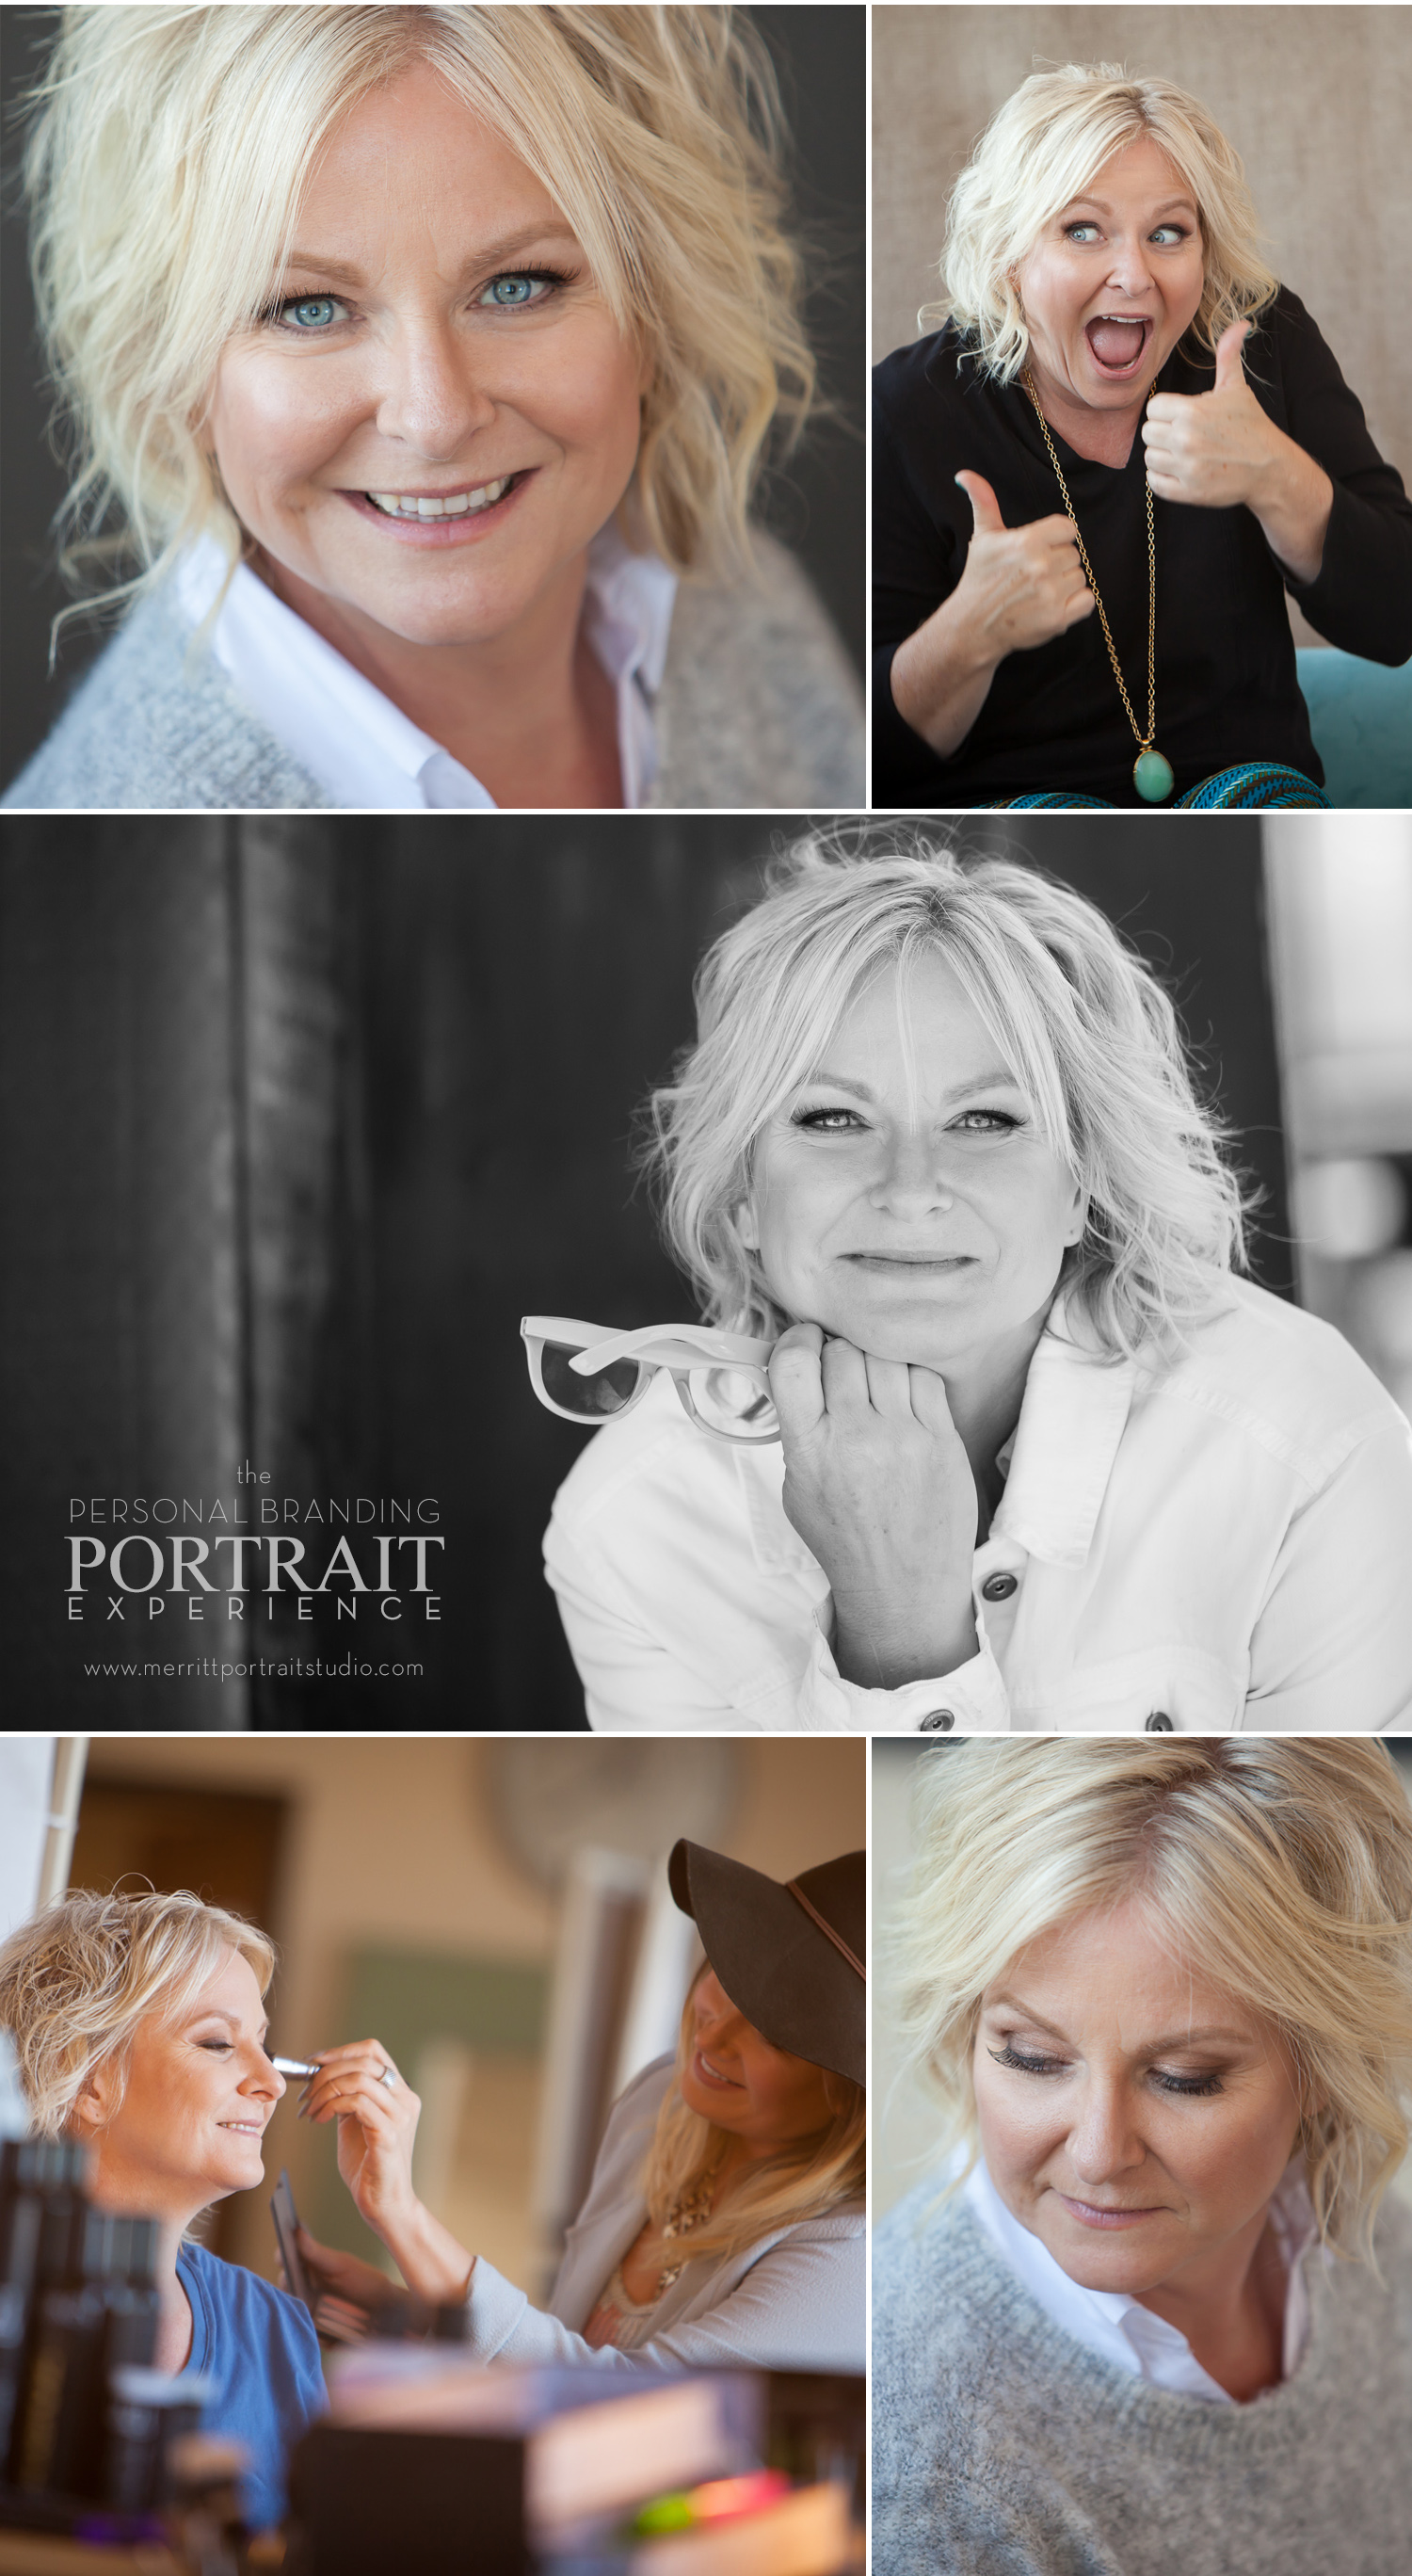 The Ultimate Personal Branding Portrait Experience to refresh your business profile, with Denver Photographer Jennifer Koskinen of Merritt Design Photo